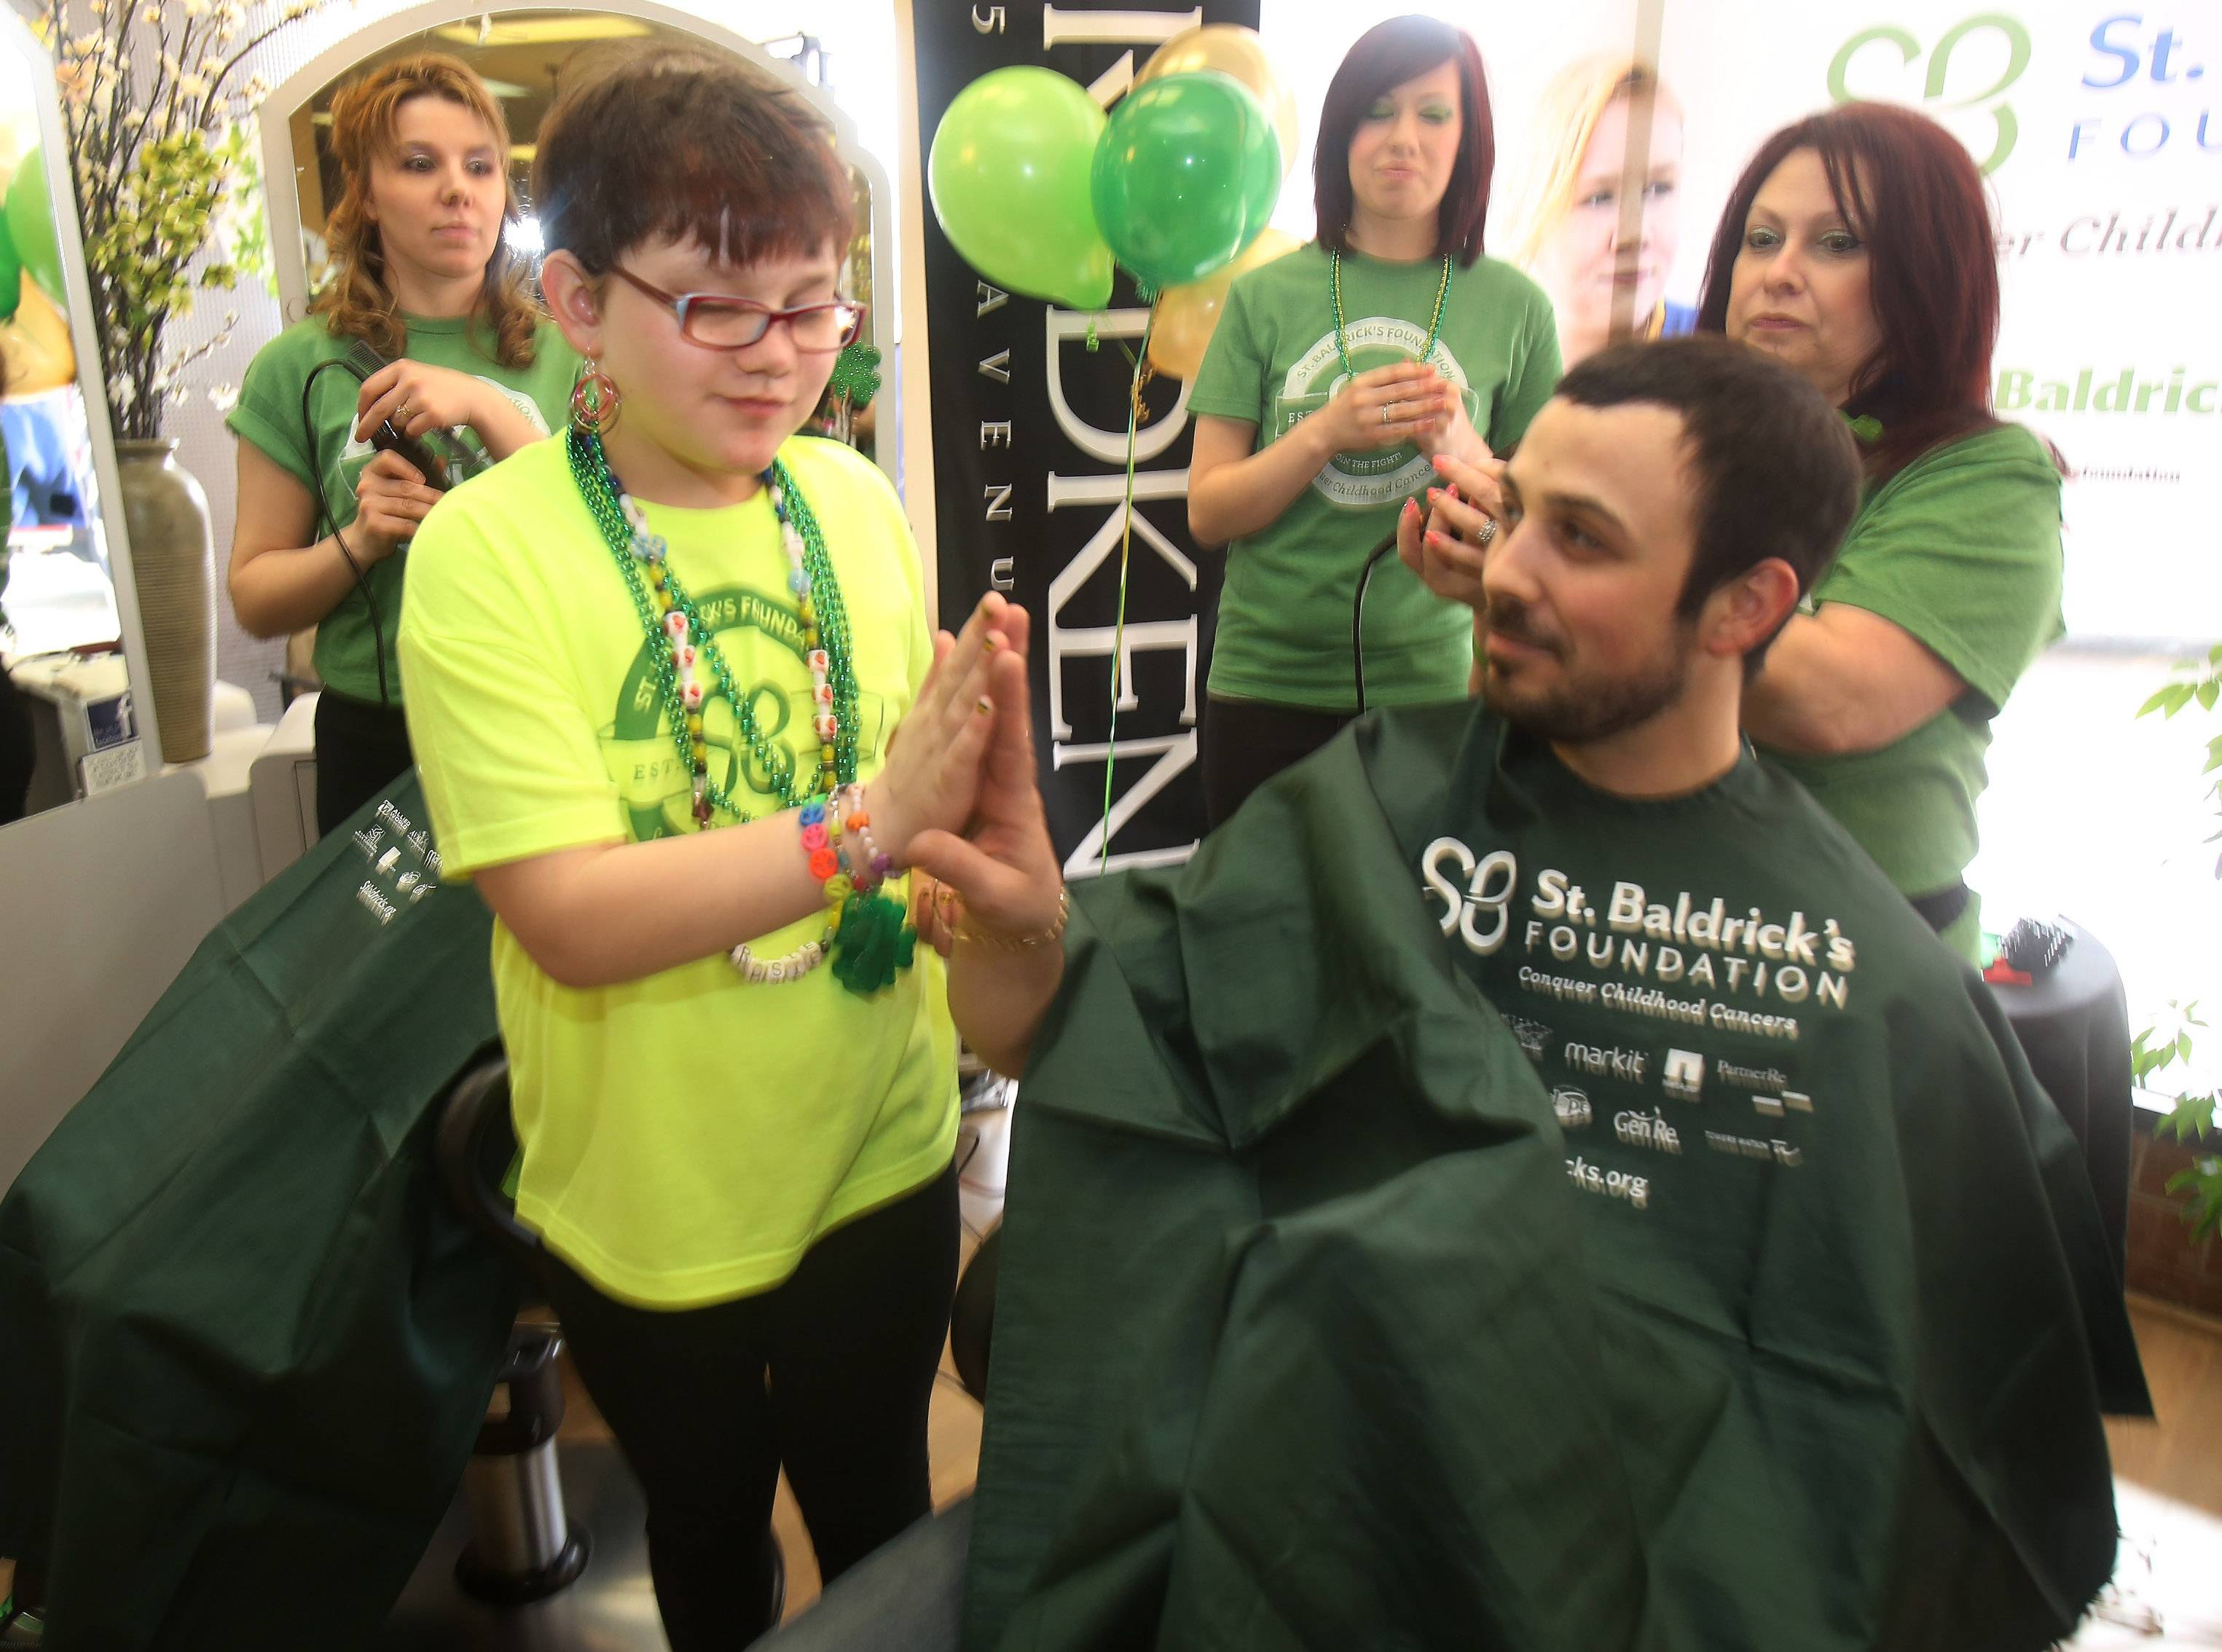 Rosie Colucci, 9, of Palatine high-fives Chris Galie of Algonquin before he gets his head shaved during a St. Baldrick's event Sunday in Lake Zurich. Rosie was the guest of honor at the event, in which participants get donations for cancer research by pledging to shave their heads. Organizers were hoping to raise up to $10,000.